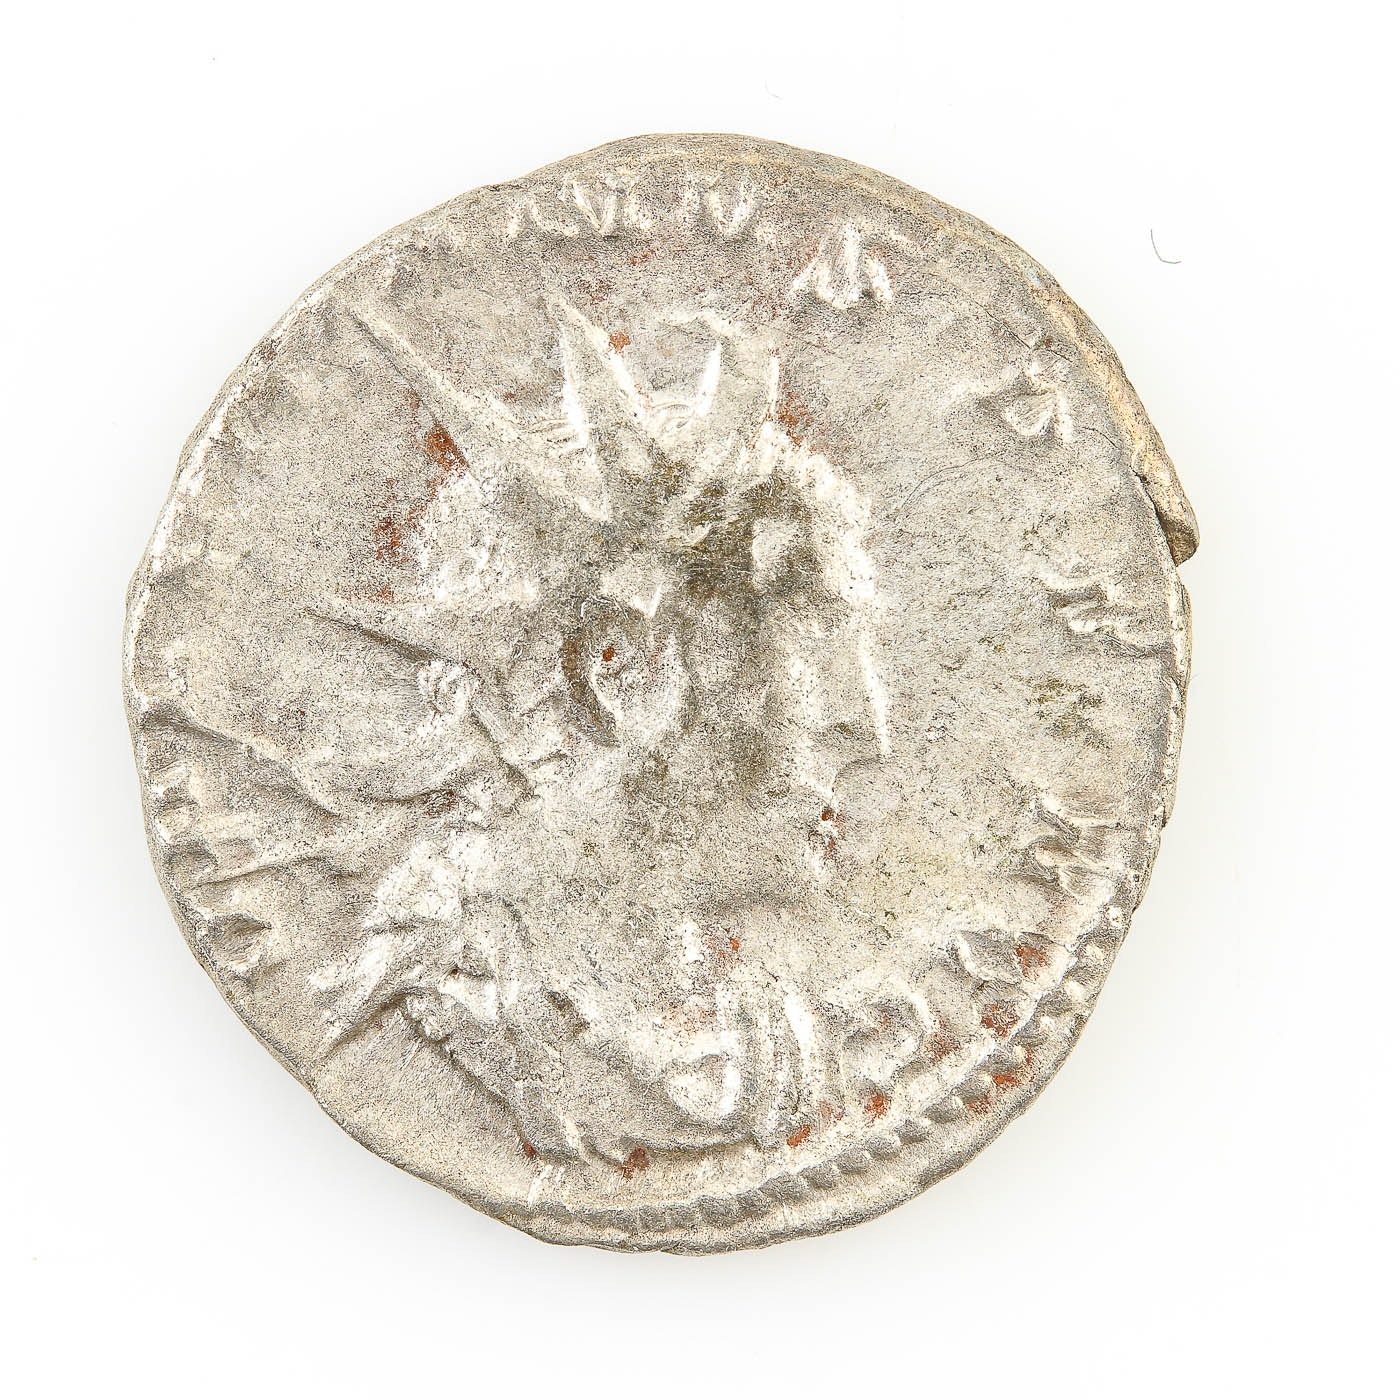 Ancient Roman Imperial AR Antoninianus of Gallienus, ca. 260 A.D.